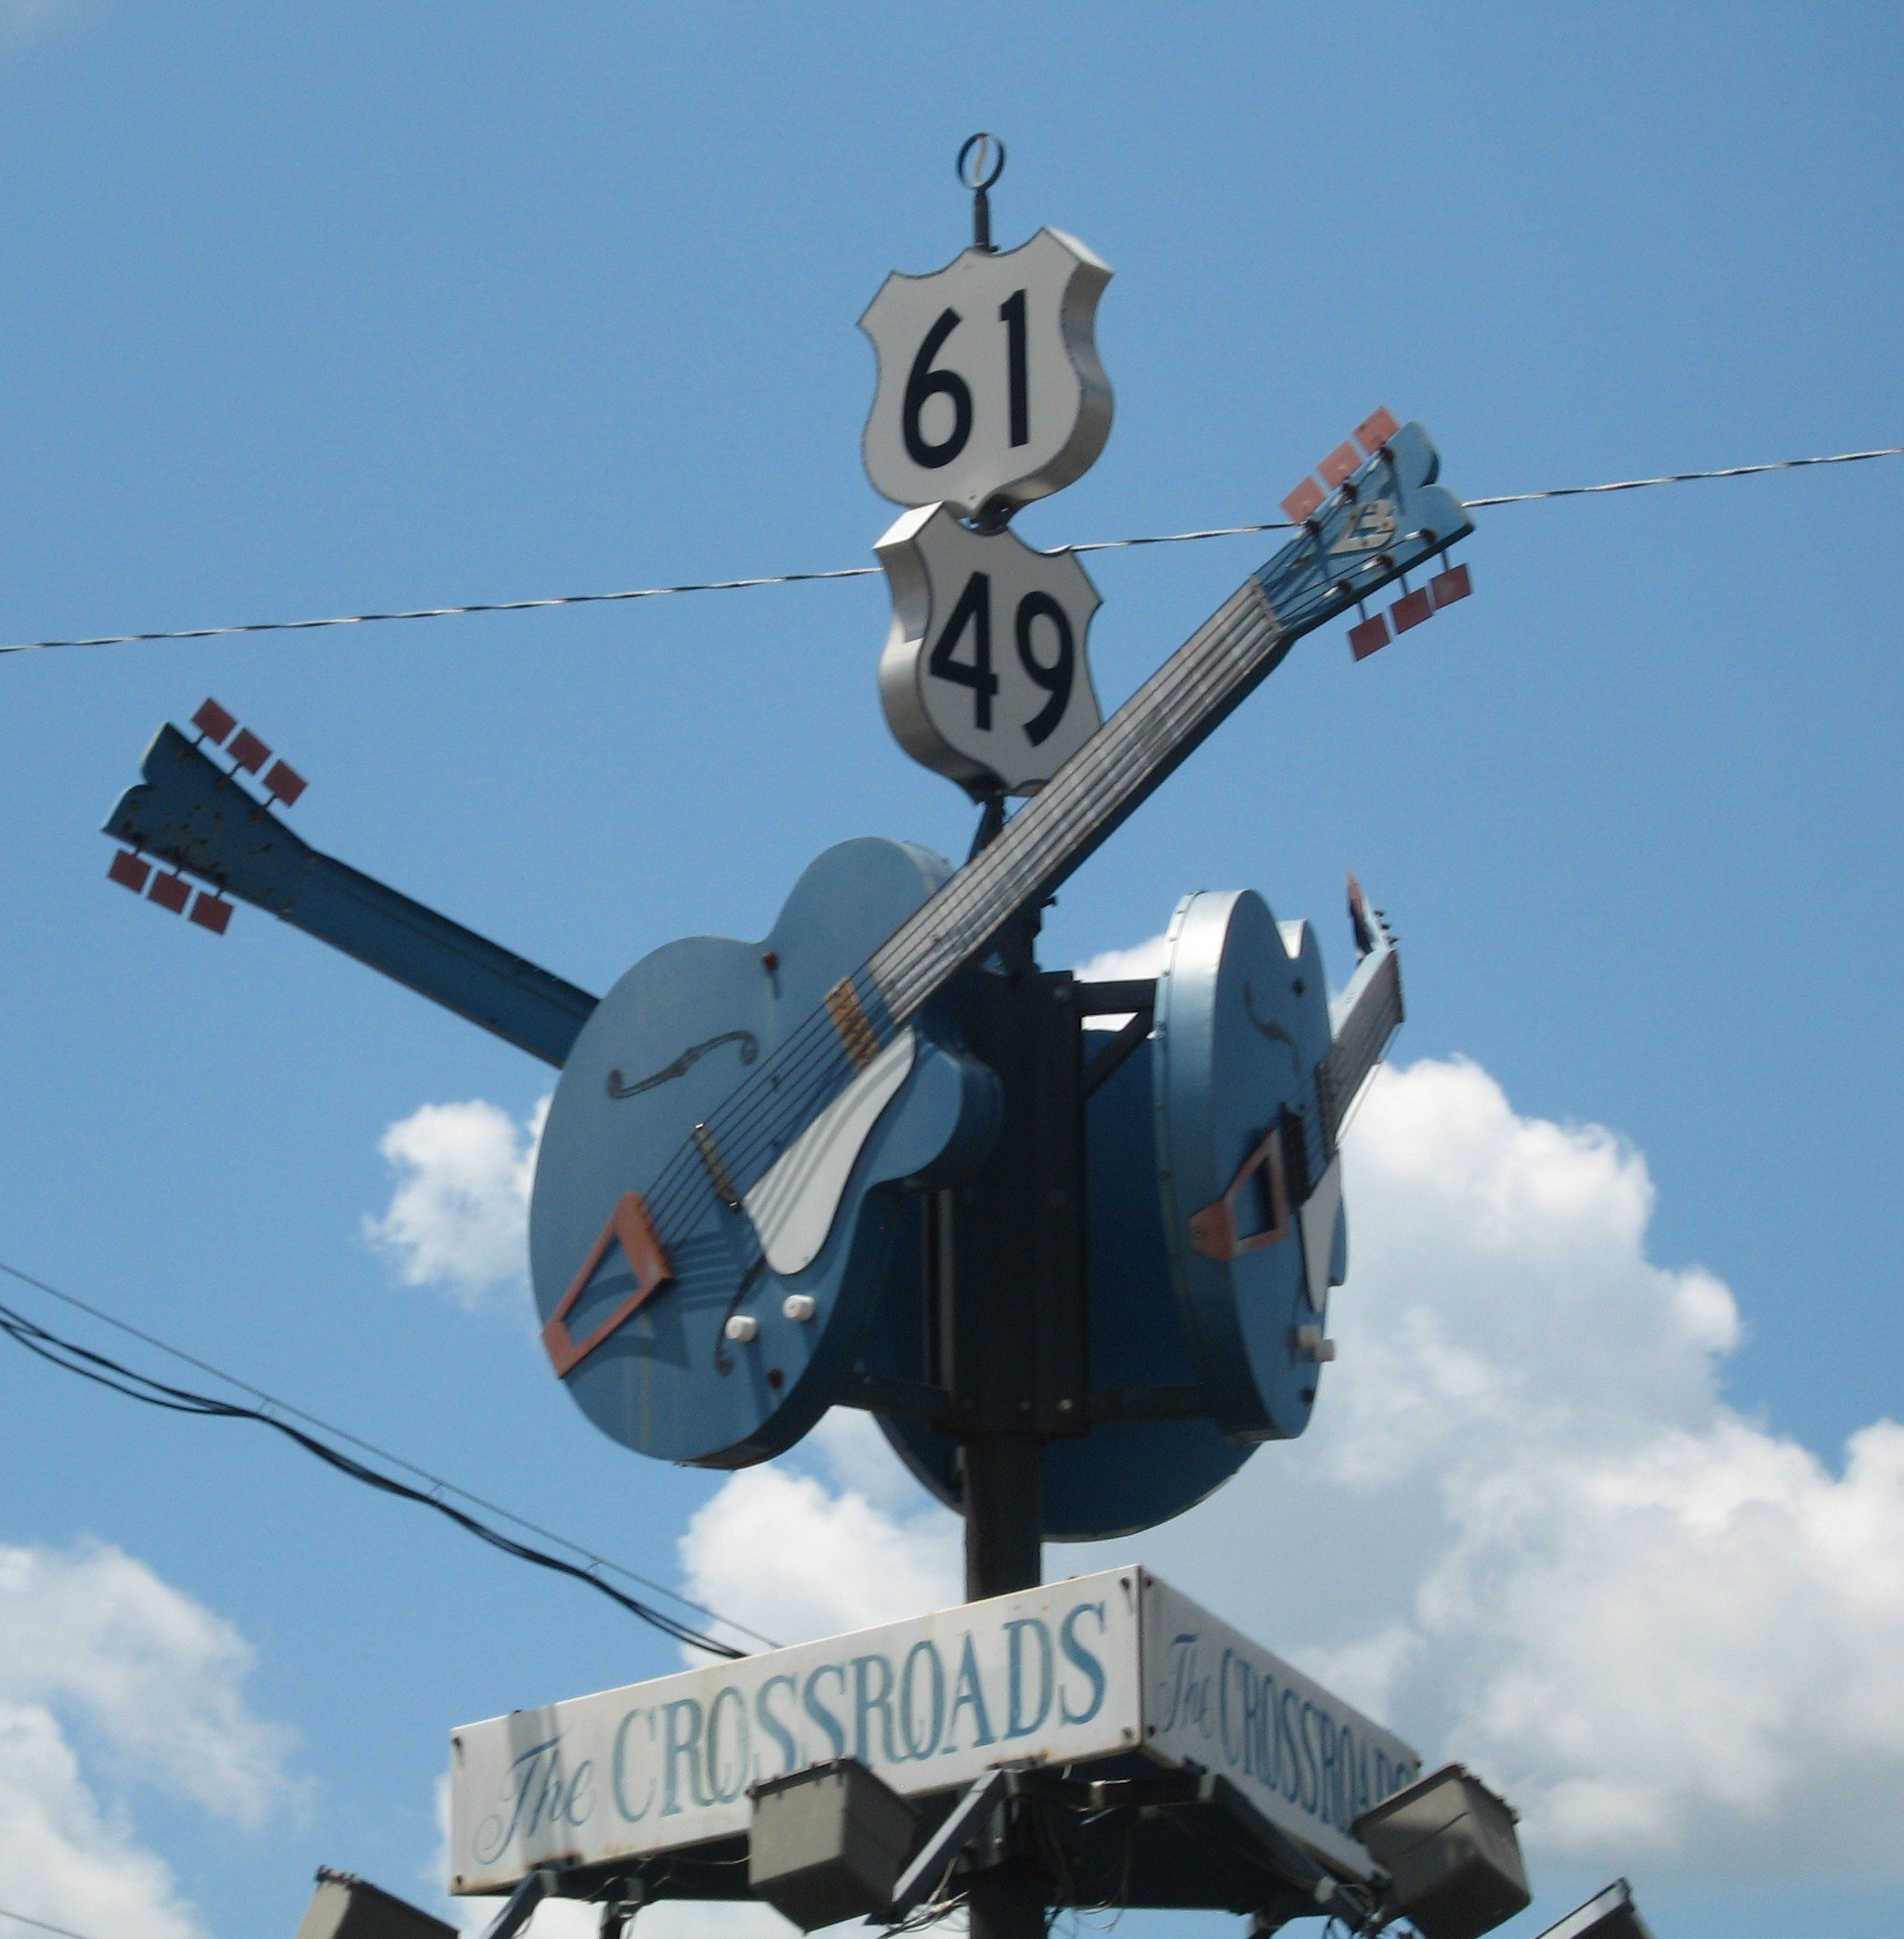 """""""The Crossroads"""", where Robert Johnson supposedly sold his soul to the Devil at Clarksdale, Mississippi   Photo: Joe Mazzola, ClarksdaleMS Crossroads, CC BY-SA 2.0"""